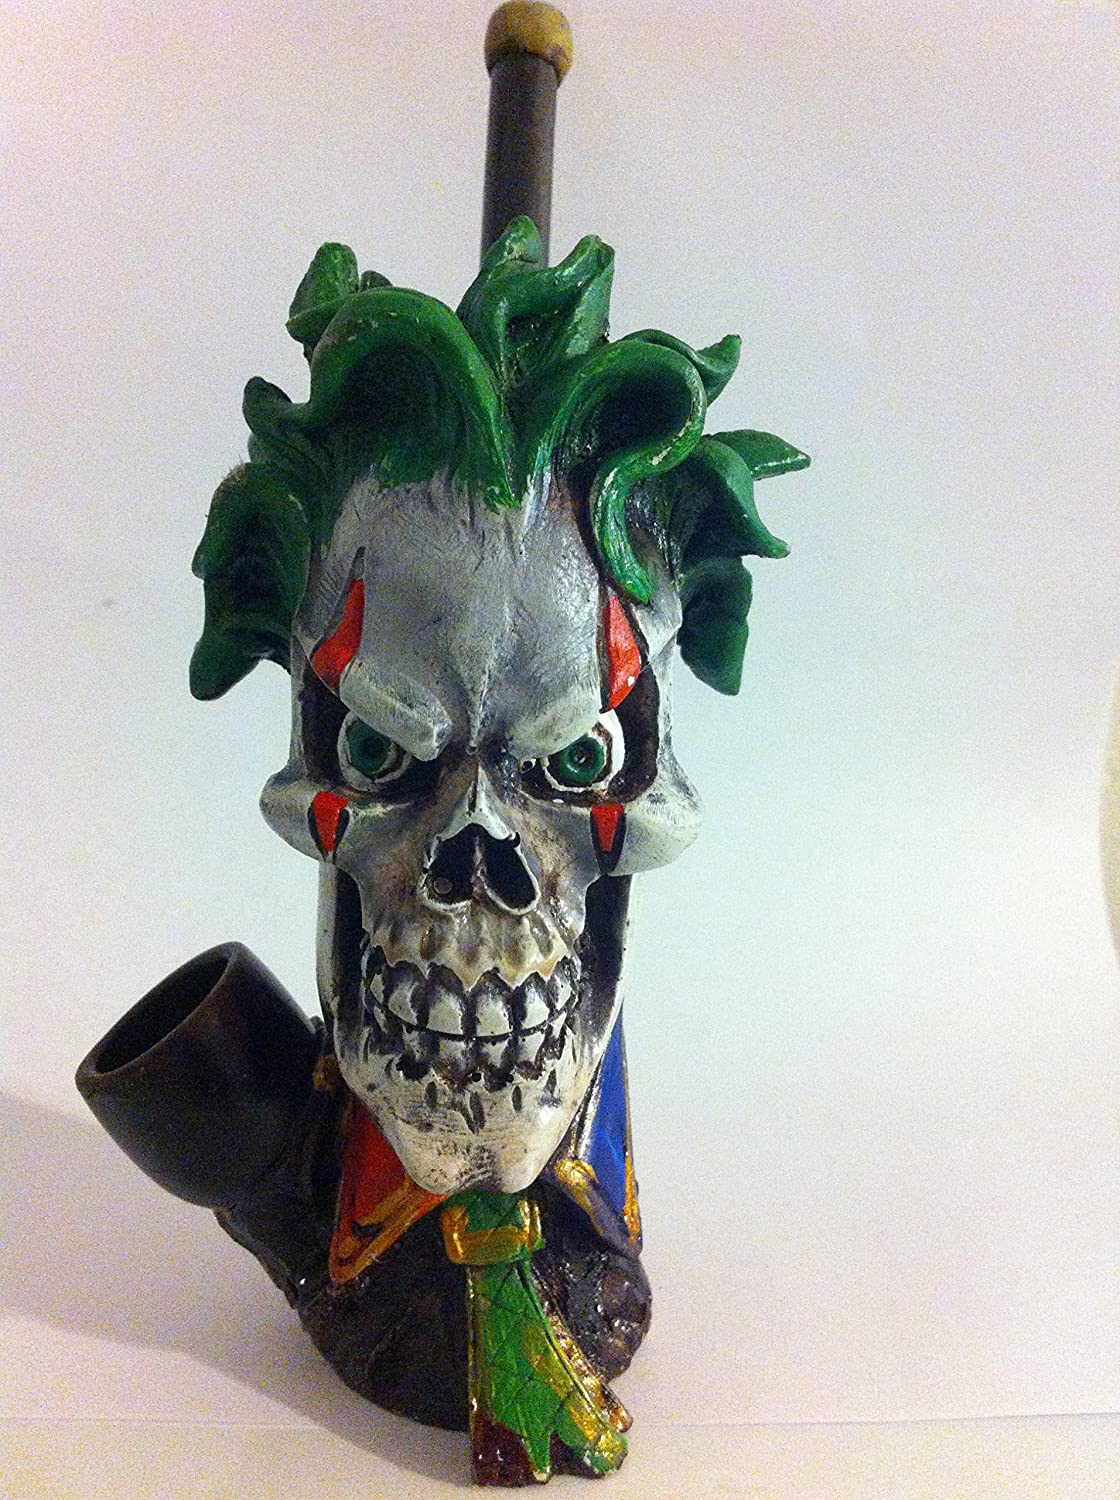 Handmade Tobacco Pipe, Skeleton Clown Design